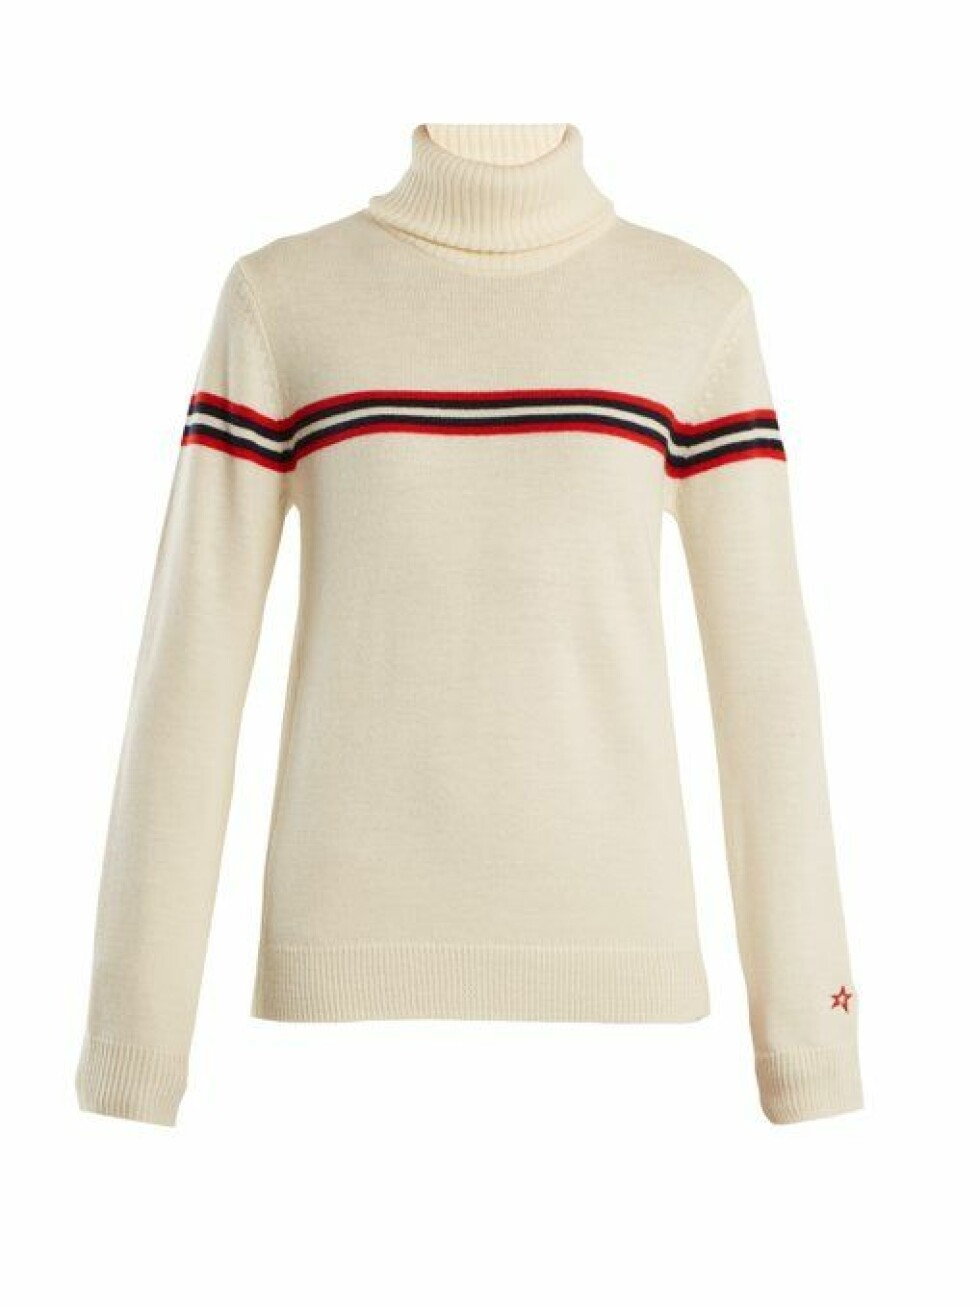 Genser fra Perfect Moment |2799,-| https://thejuice.no/product/overdeler/perfect-moment-orelle-turtle-neck-sweater/